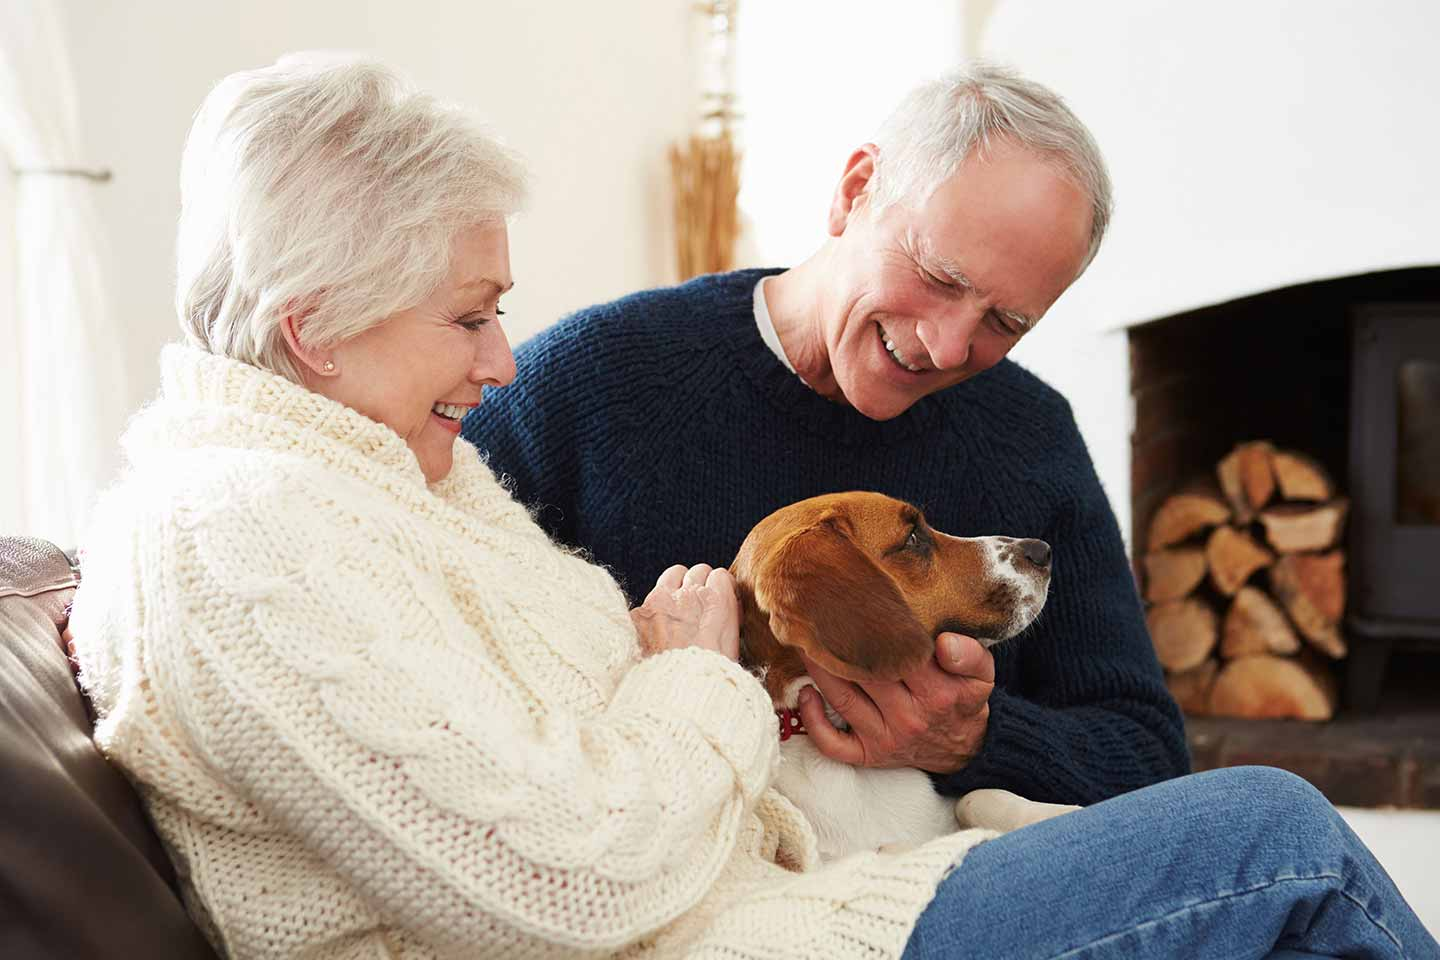 Couple in their sixties at home on the couch with their dog.